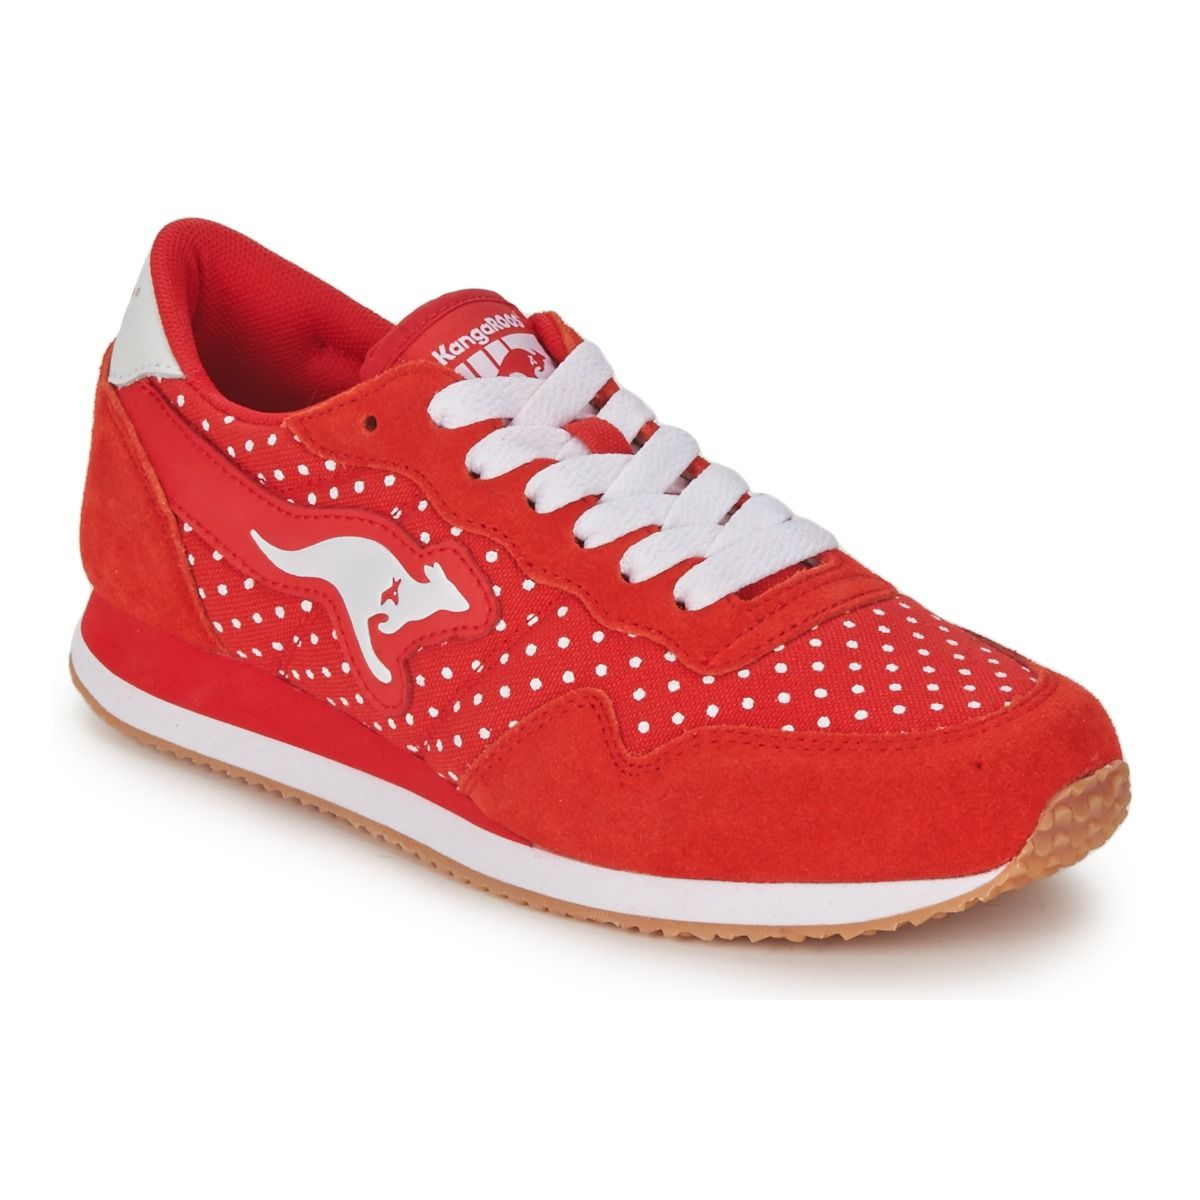 40fa087613c Kangaroos INVADER DOTS Rouge | Shoes Glorious Shoes | Shoes ...